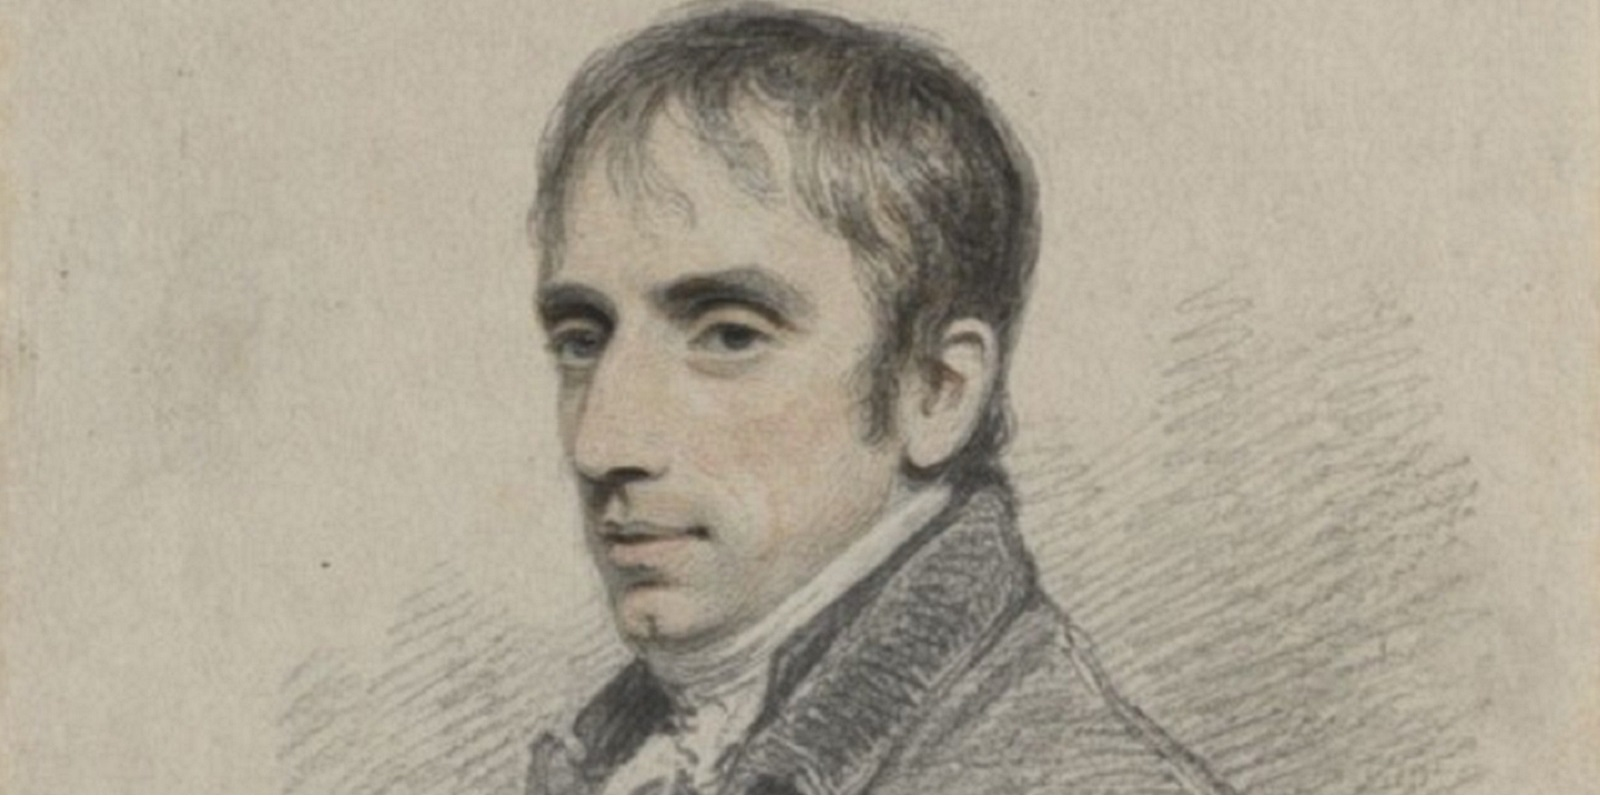 Wordsworth portrait